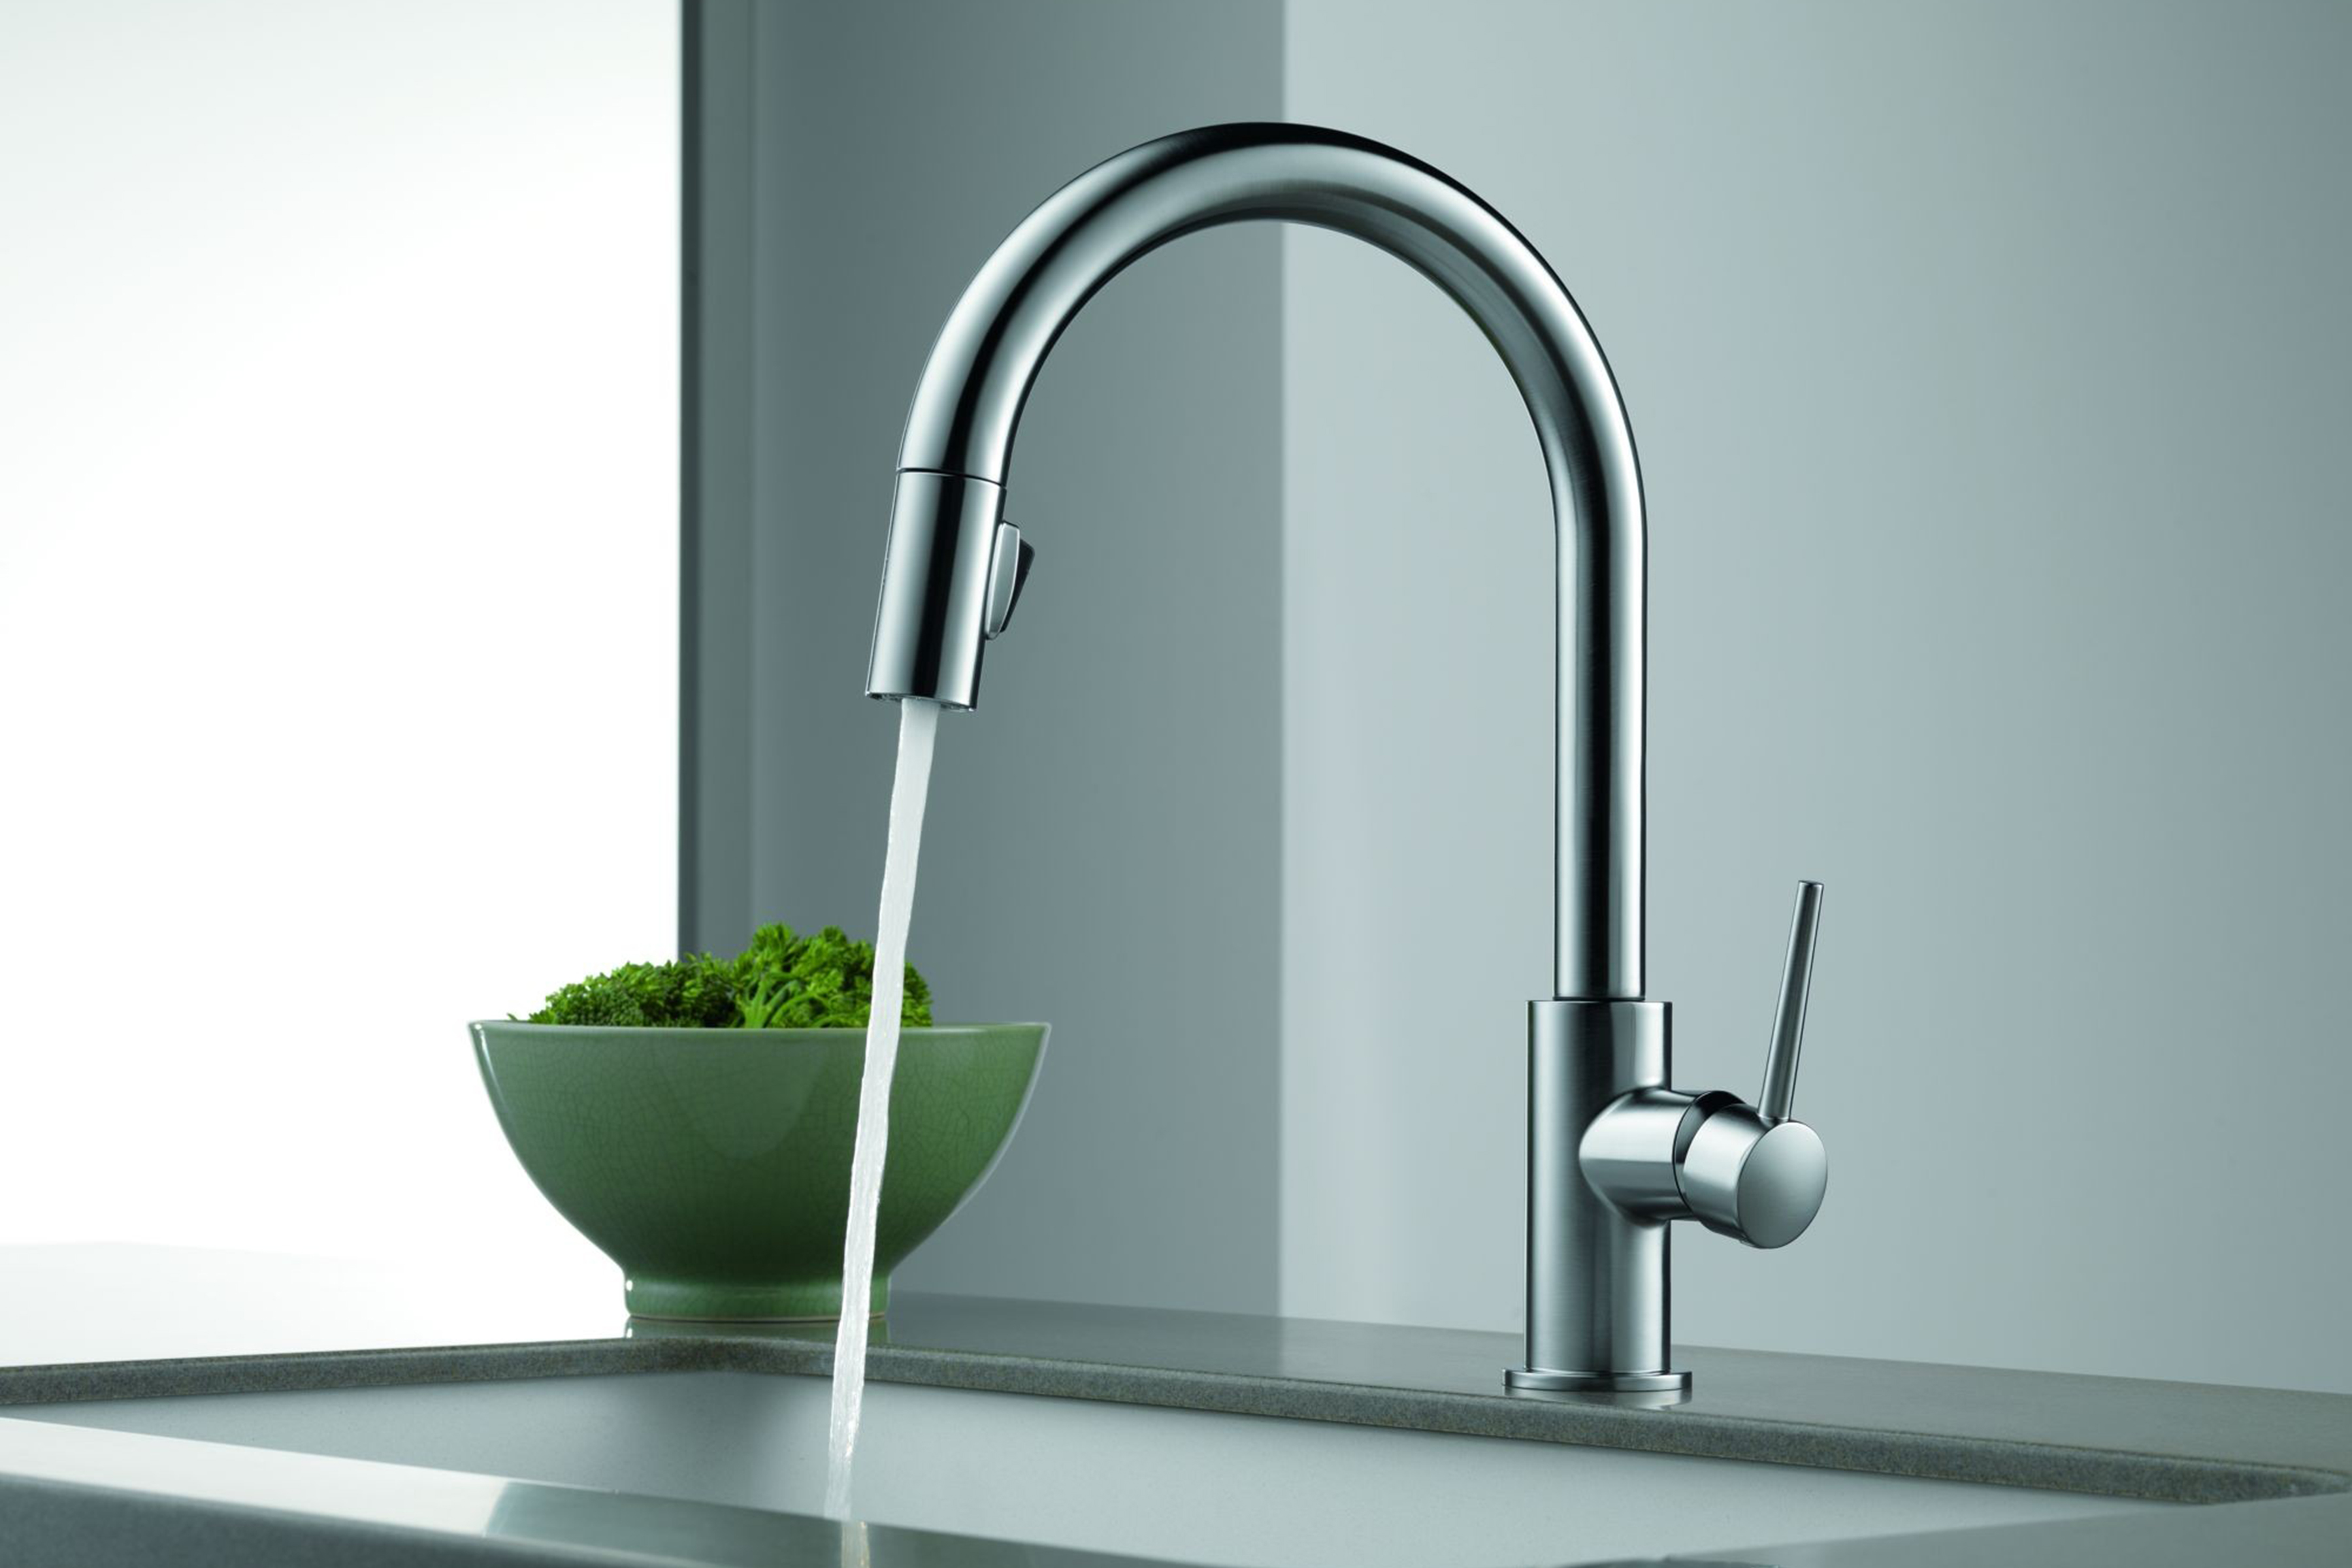 Best Kitchen Faucets Reviewed in 2018 | ContractorCulture